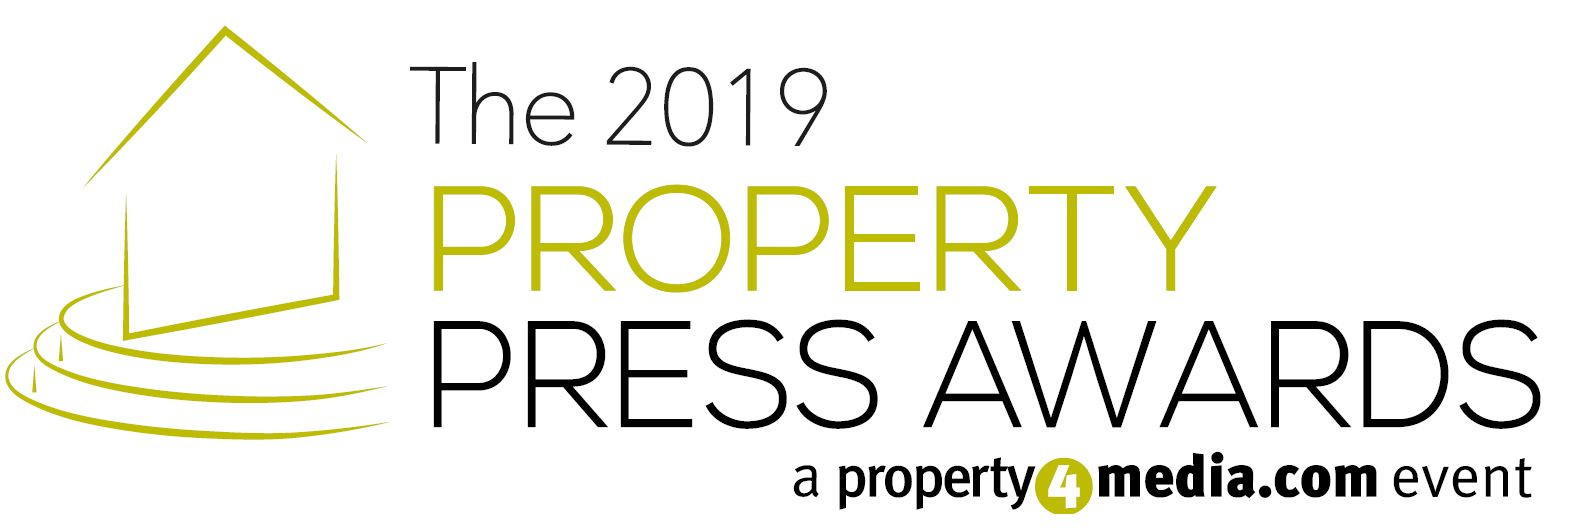 Property Press Awards 2019